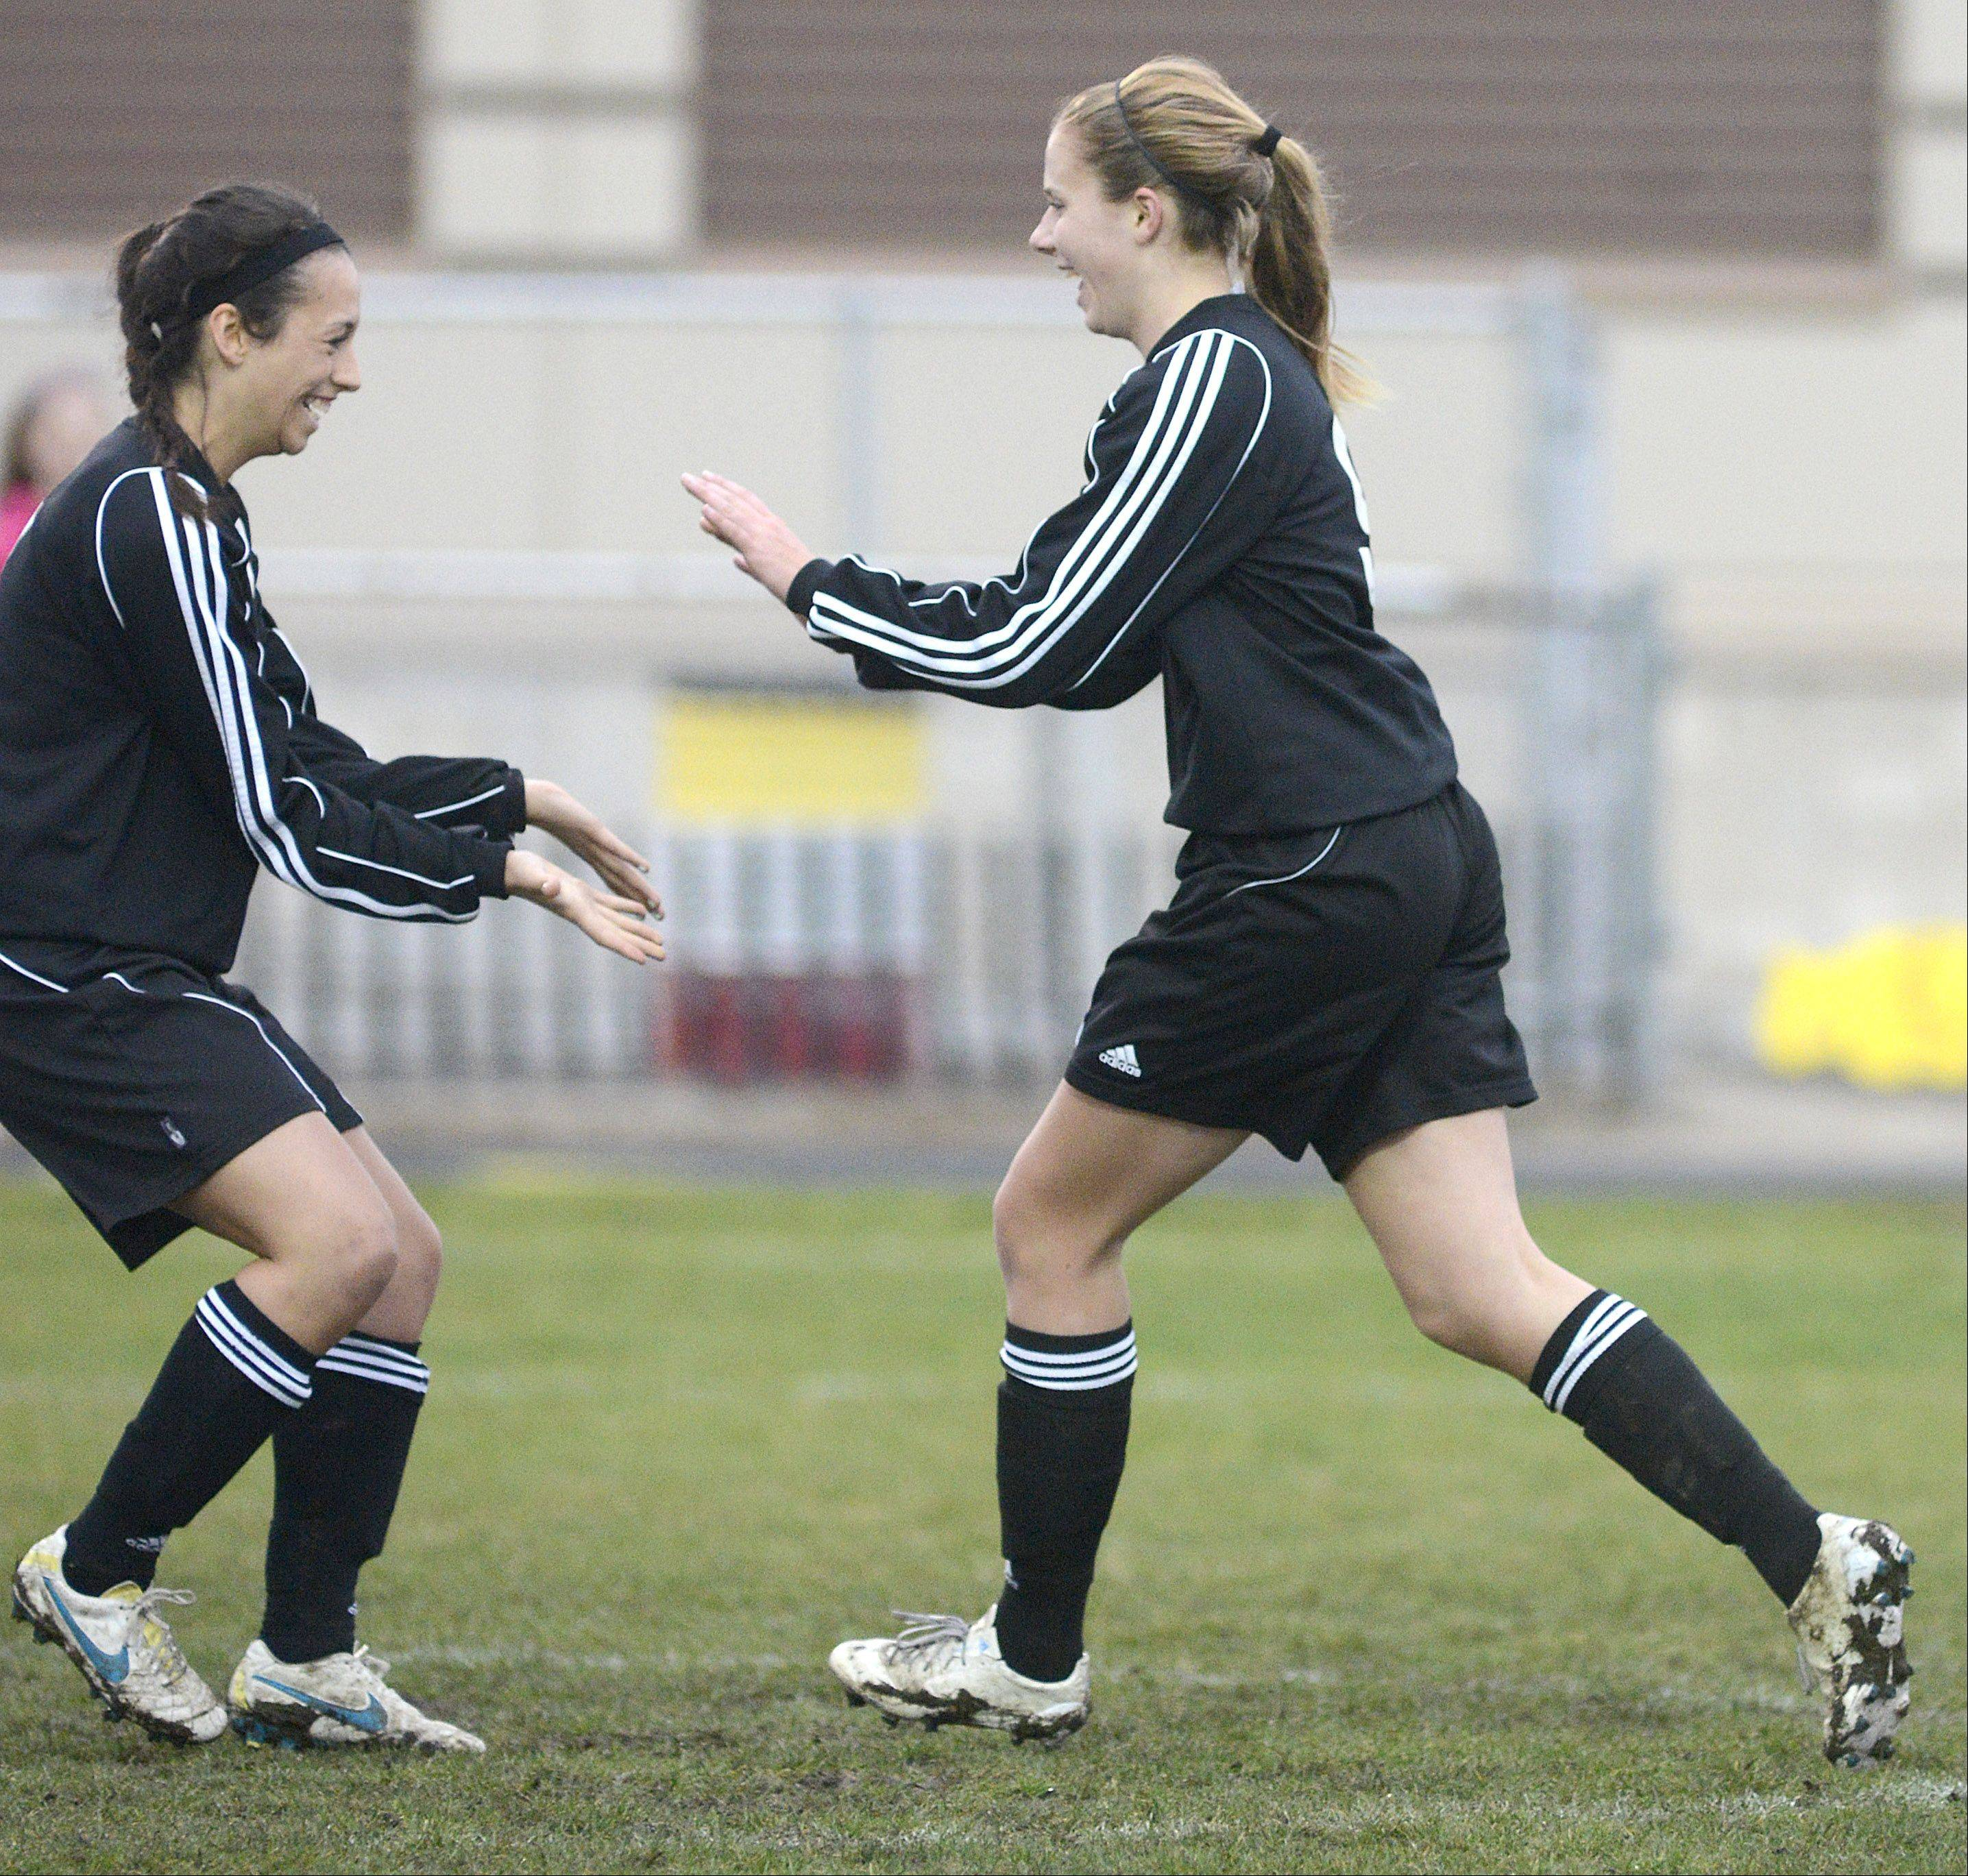 St. Charles North's Ashlyn Walter, left, greets teammate Alyssa Brandt after her goal over Batavia in the first half on Thursday, April 11.